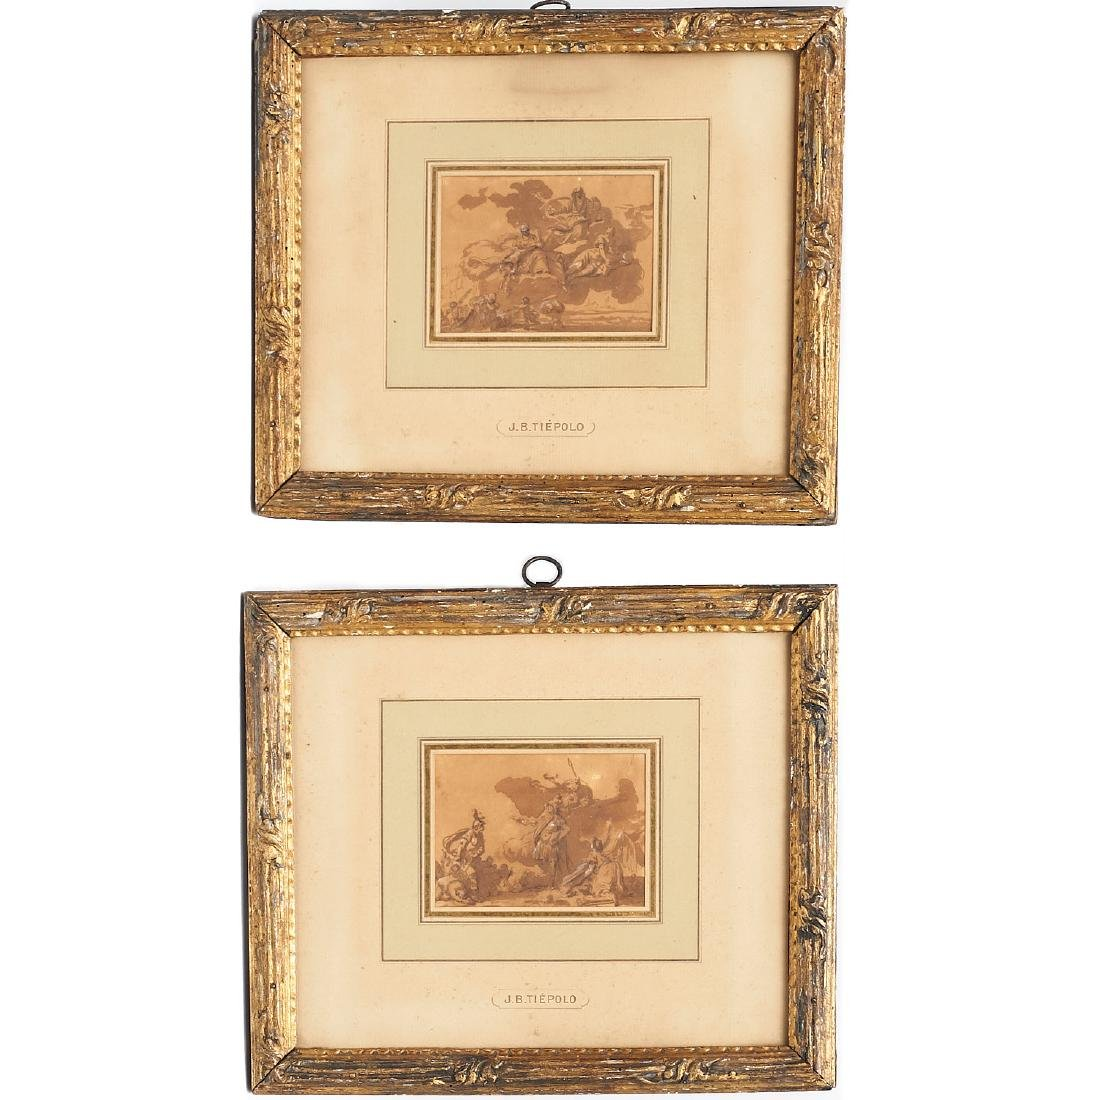 Giovanni Battista Tiepolo (after), (2) drawings